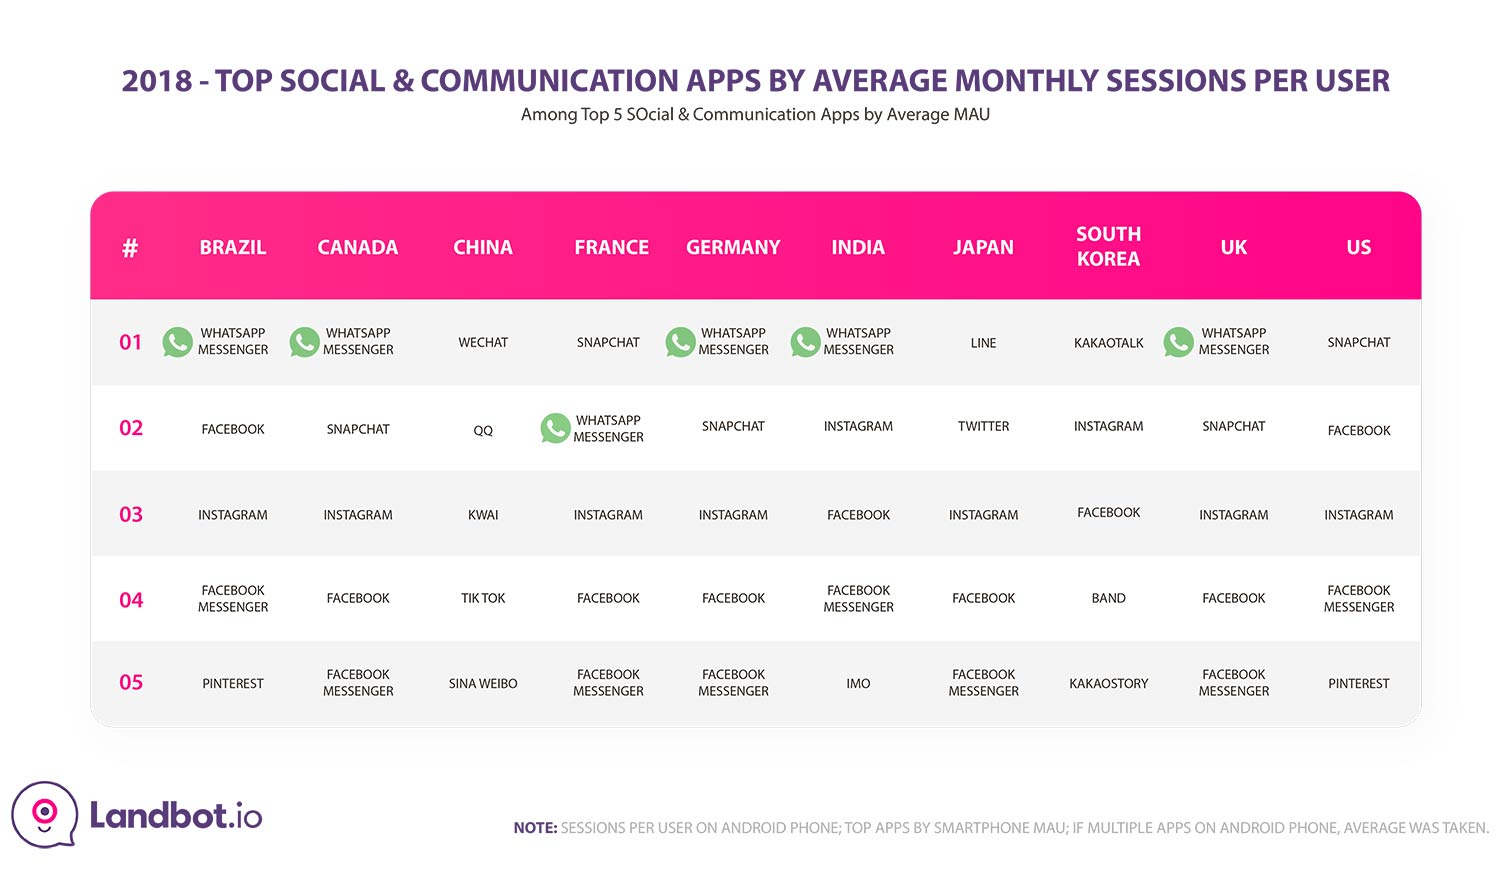 top-social-&-communication-apps-2018-by-country-1